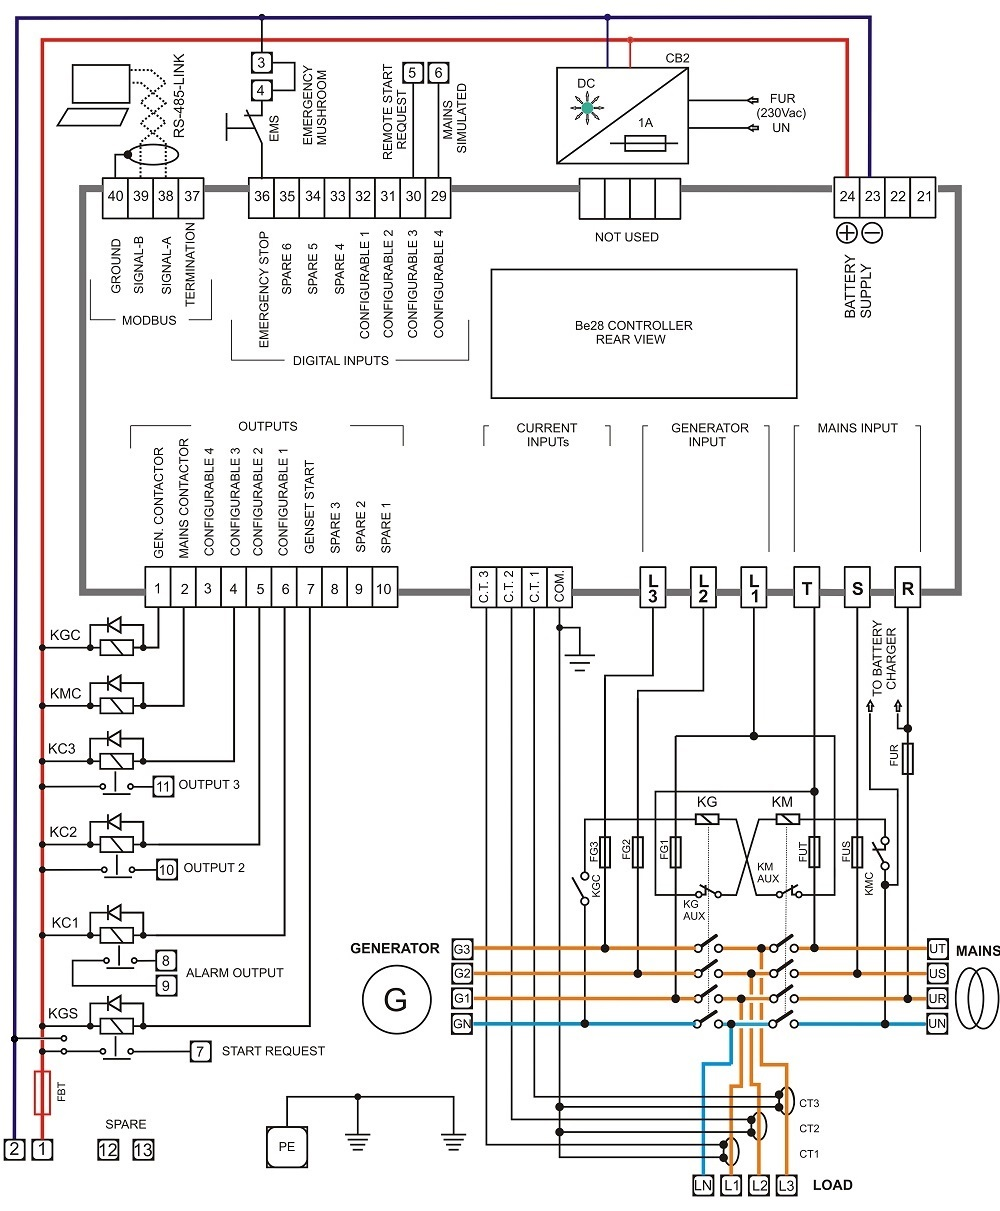 Wiring Diagram Panel Wlc : Dpdt relay wiring diagram get free image about